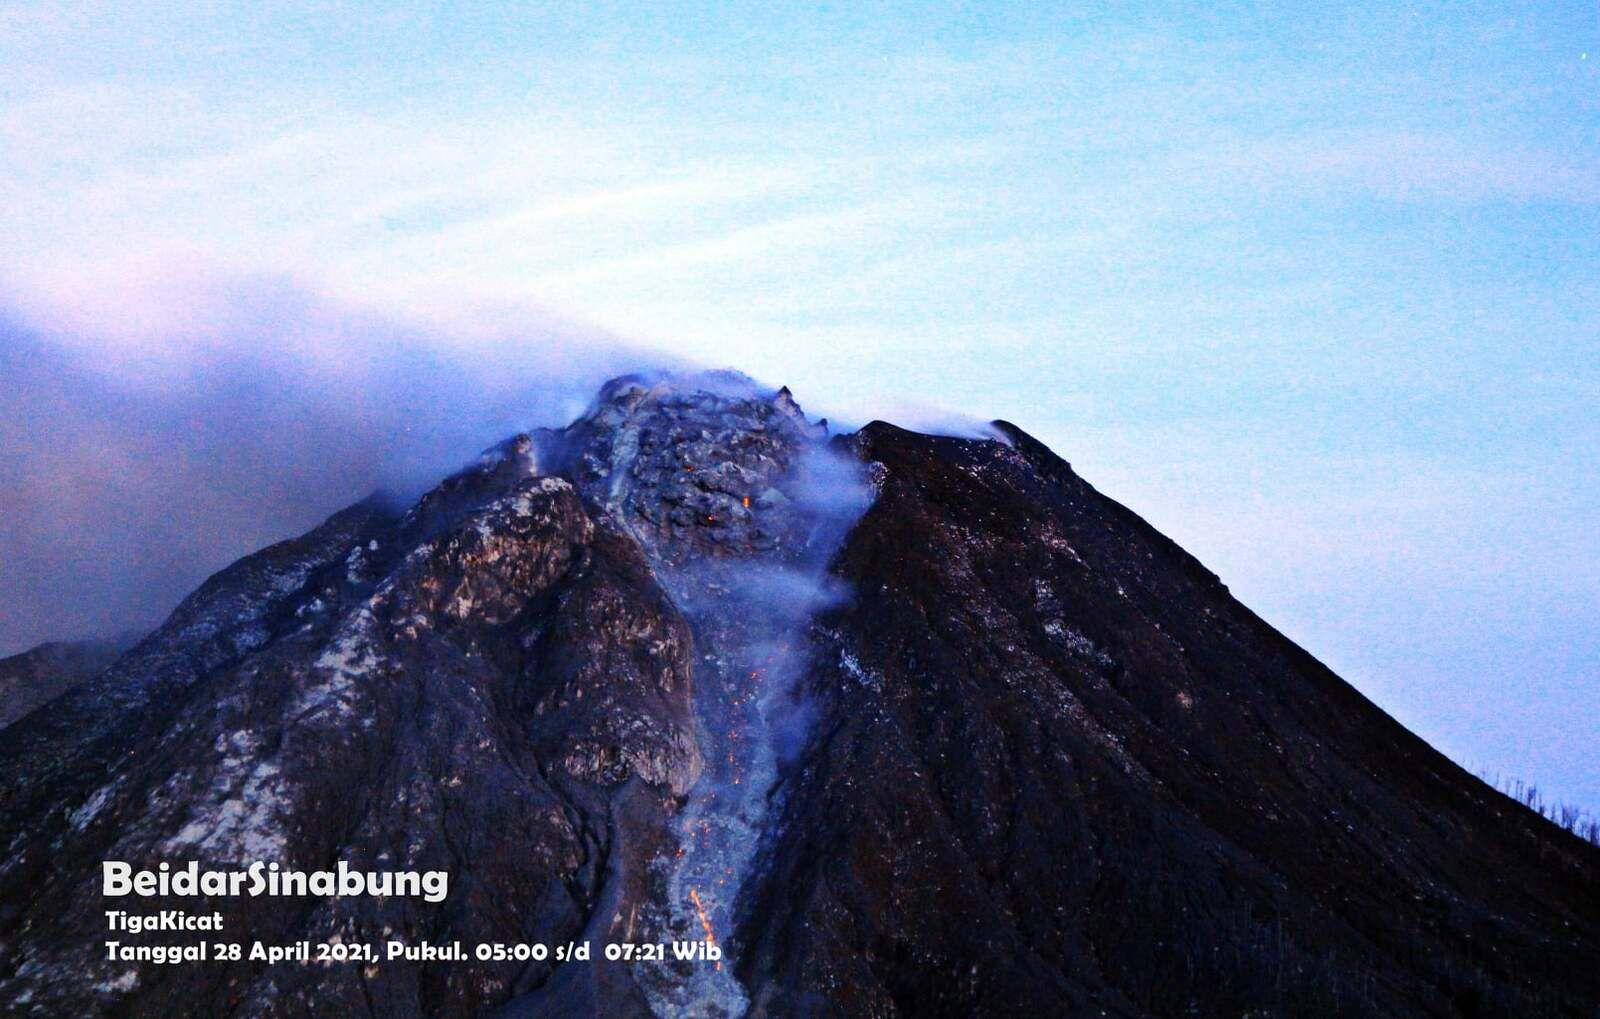 Sinabung by TigaKicat - the dome is imposing on 04.28.2021 / between 05:00 and 07:21 WIB - photo Firdaus Surbakti / Beidar Sinabung